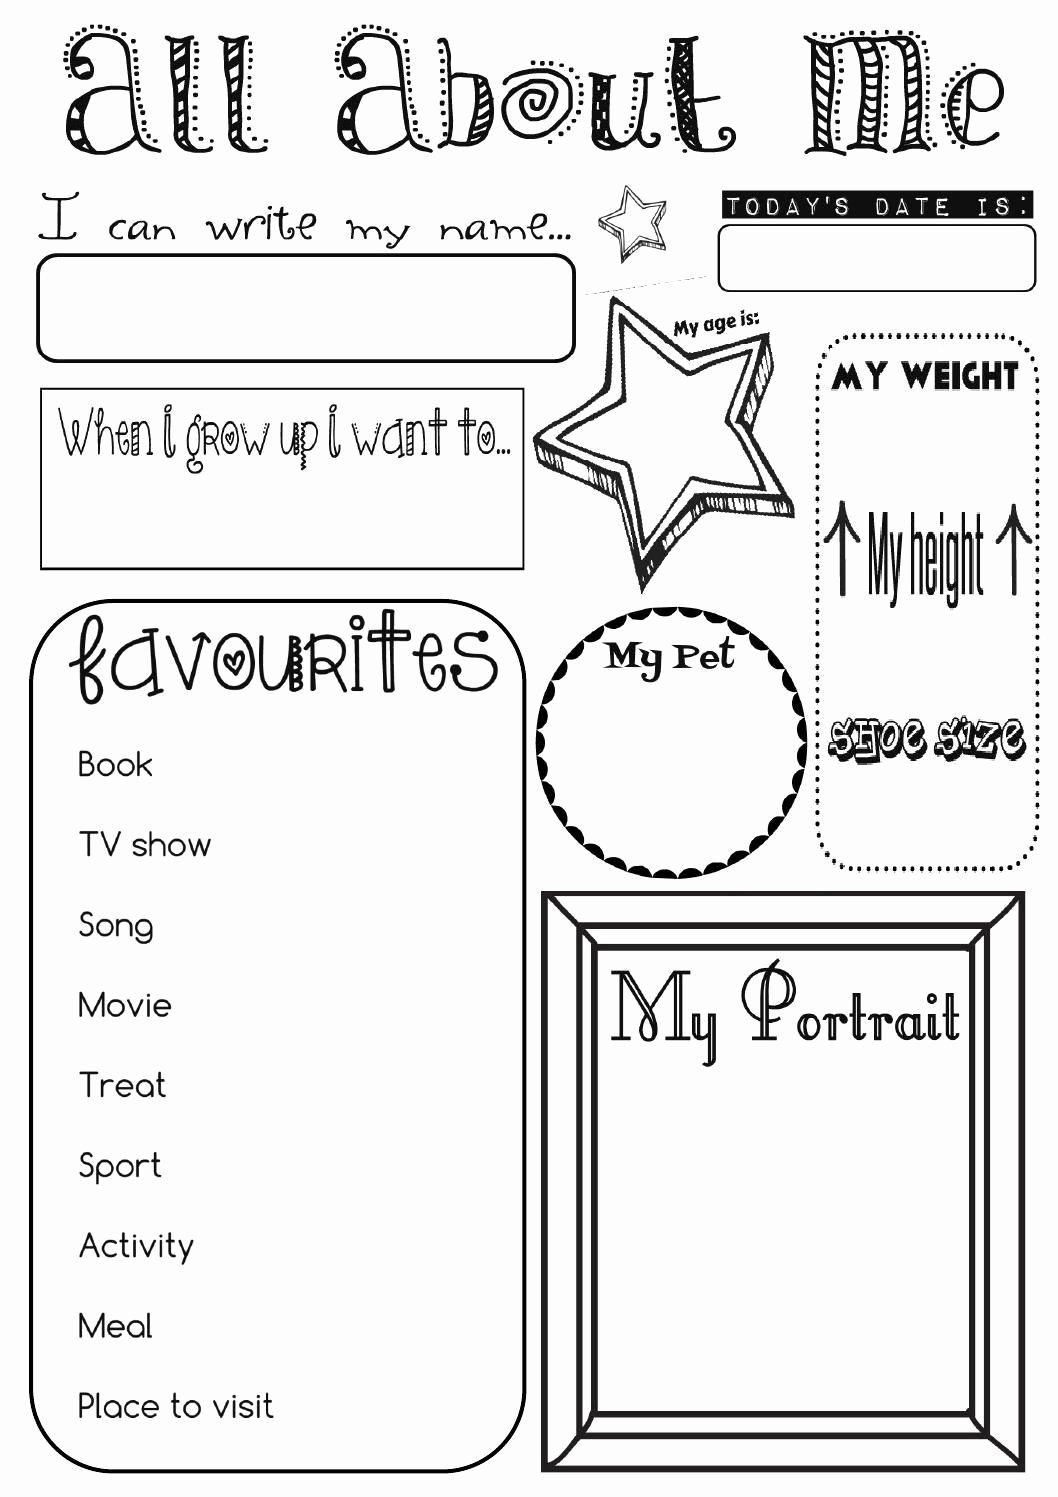 All About Me Worksheet Preschool Awesome All About Me Activity Sheet by Ernie and Bird for Pre